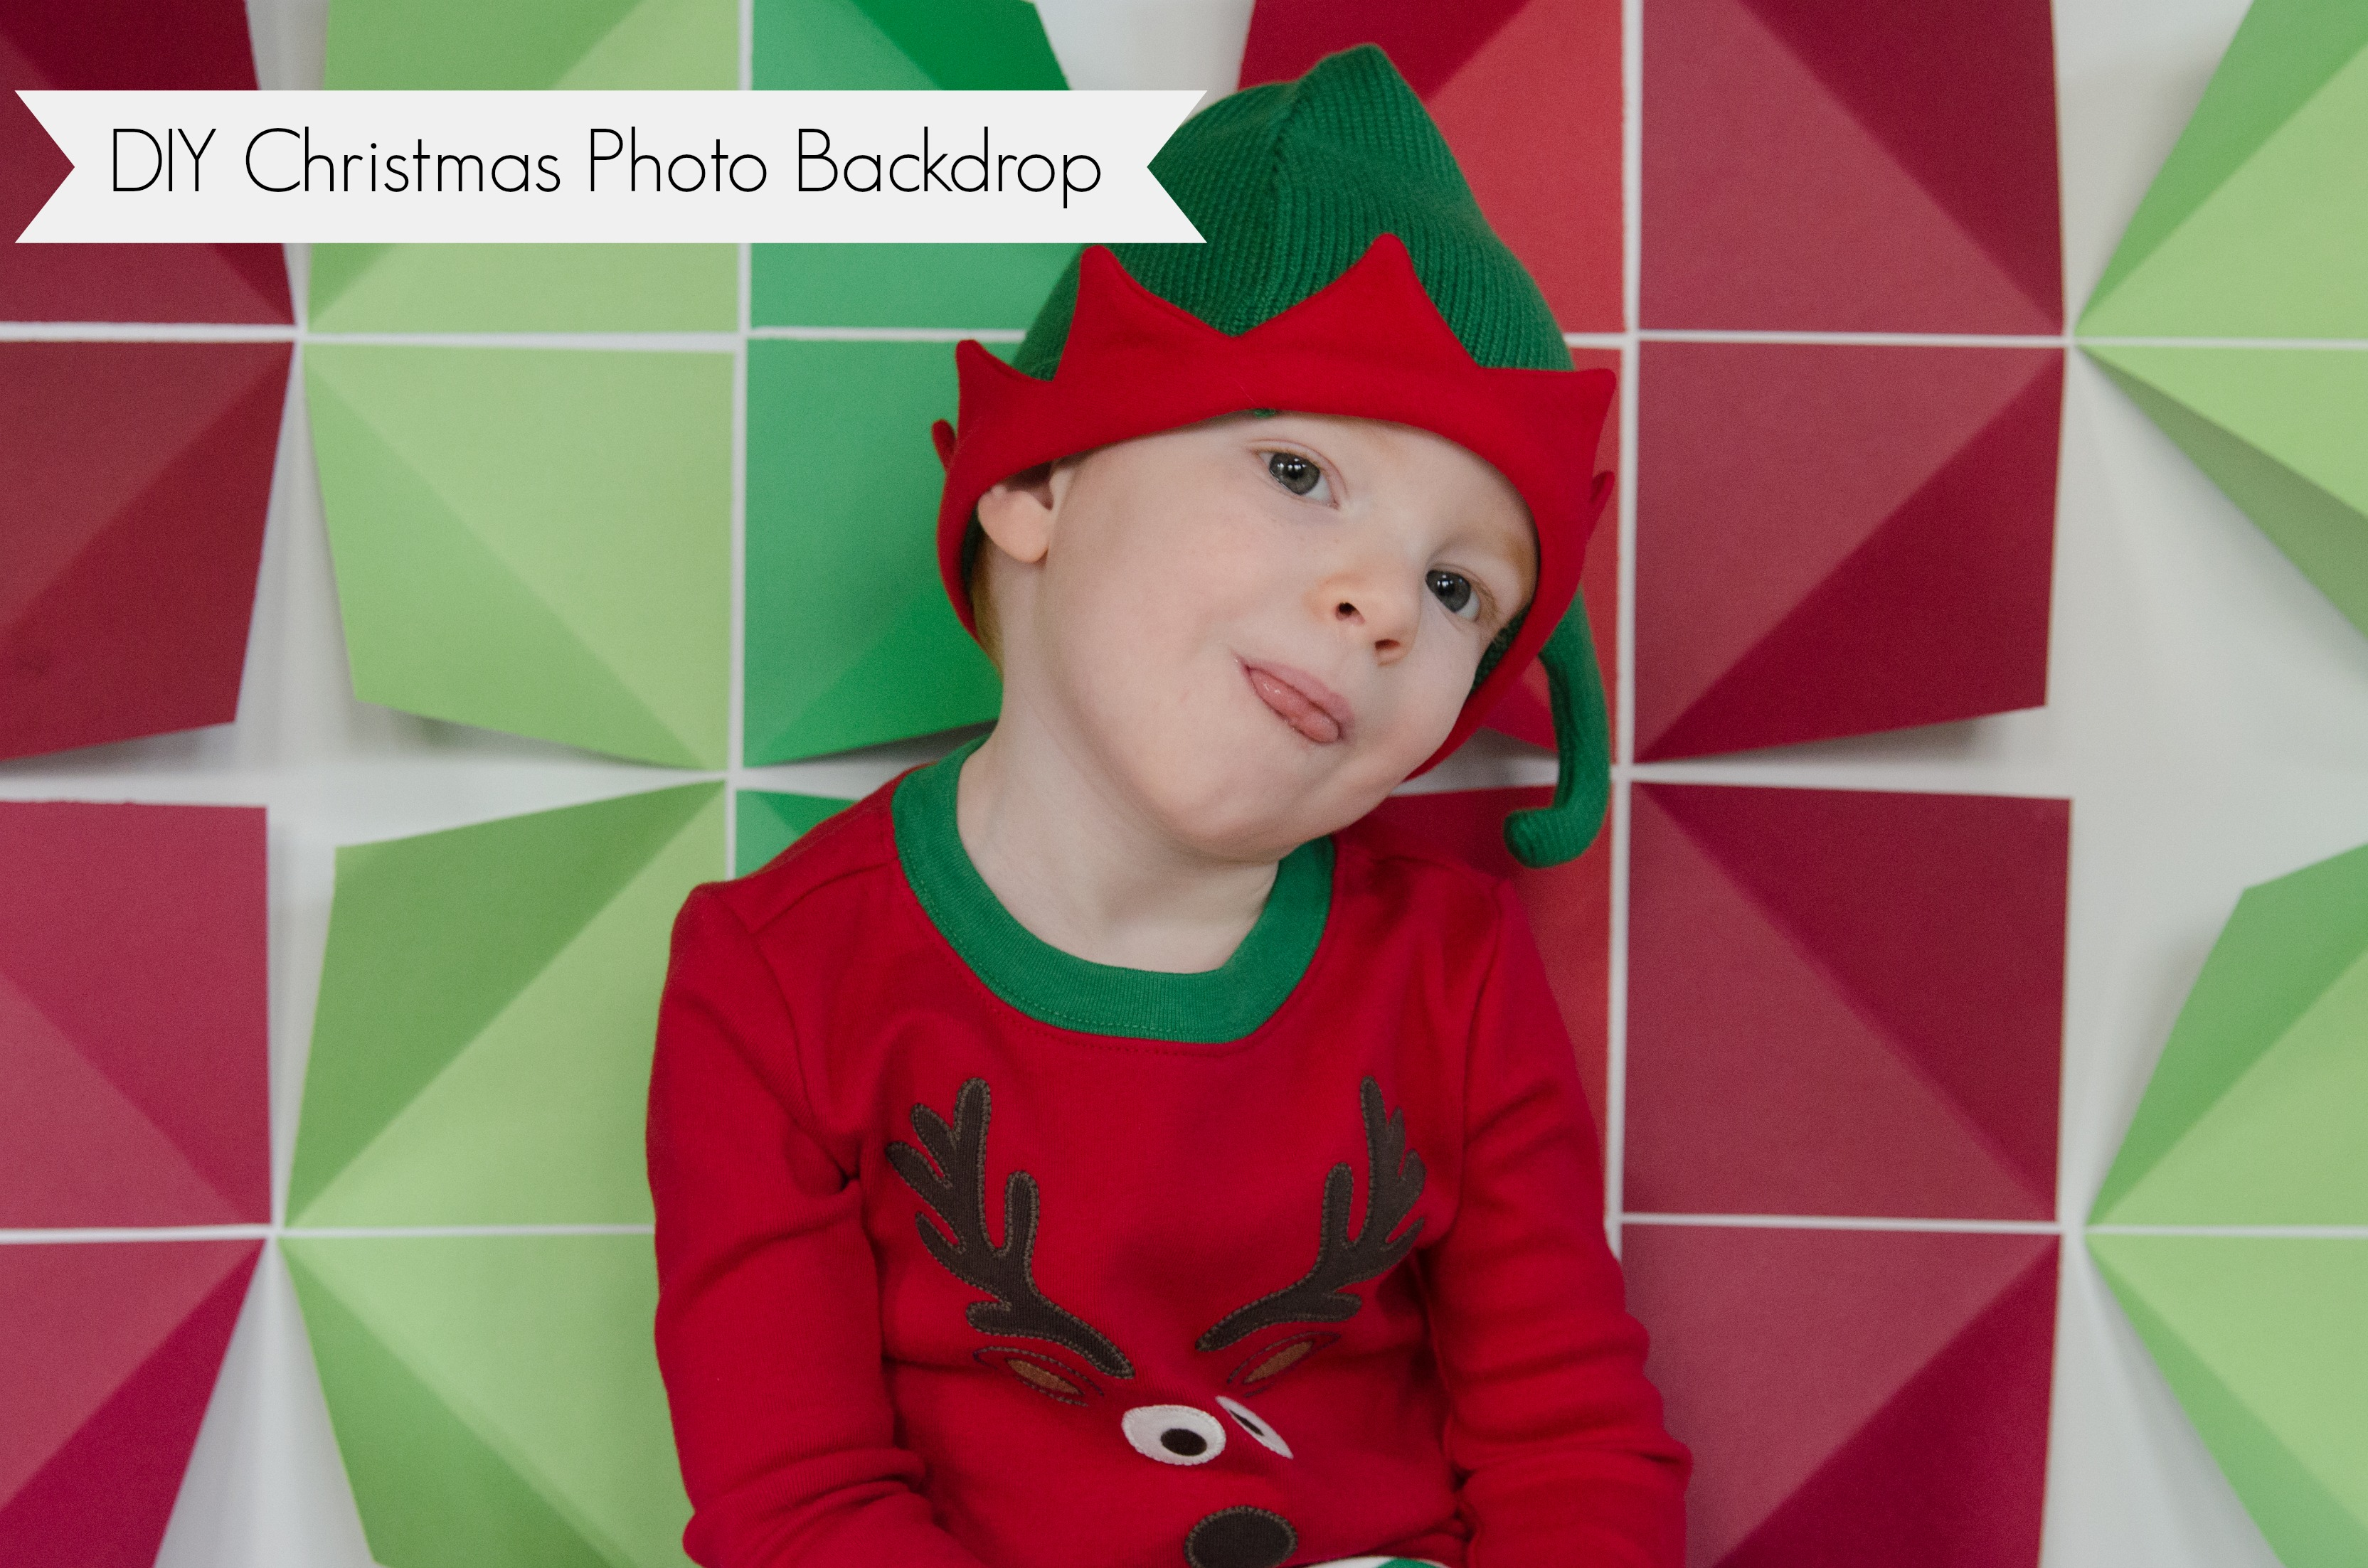 11 DIY Photography Backdrops For Holiday Images - Christmas ...